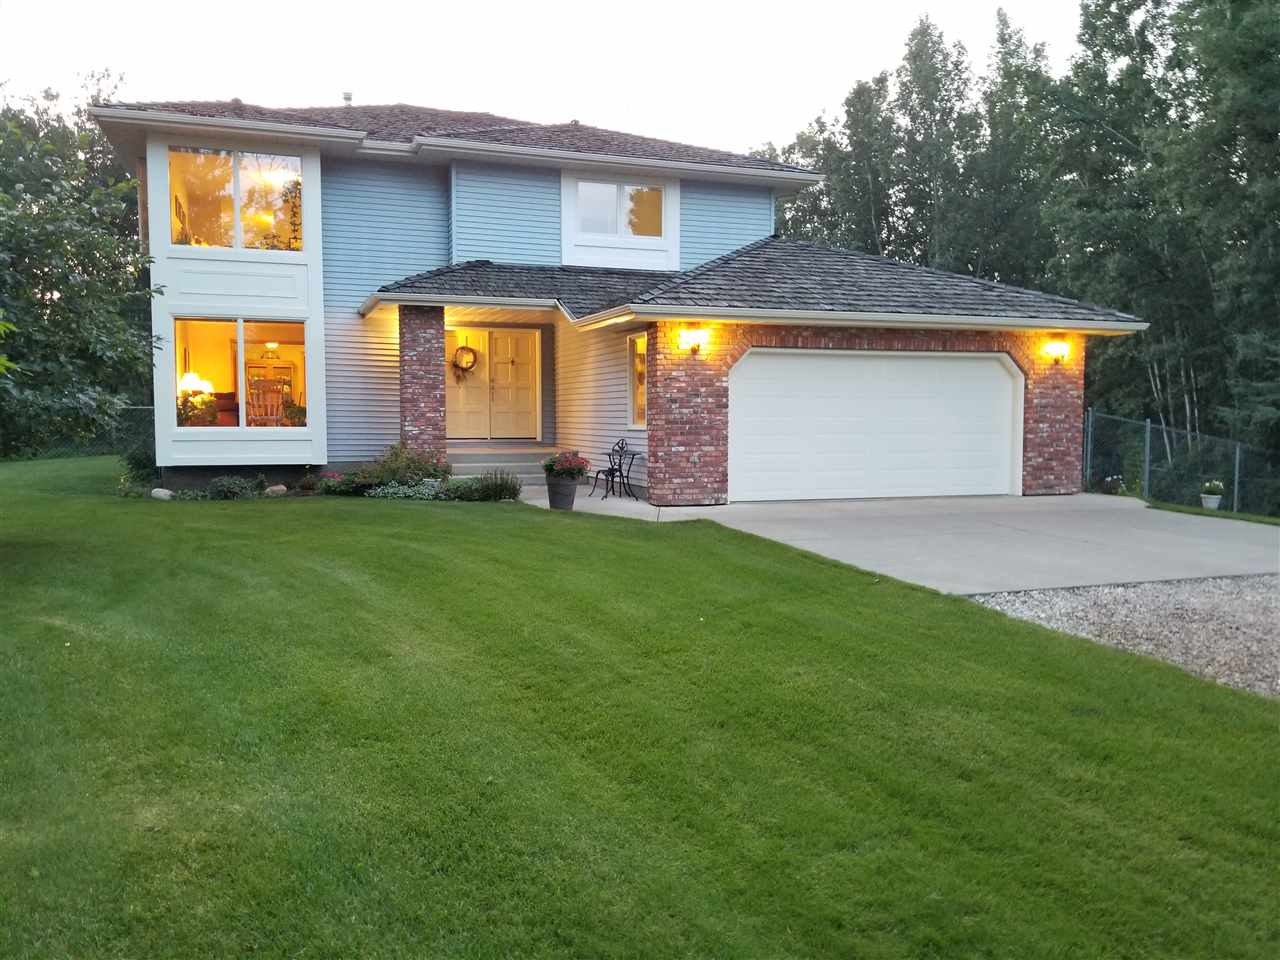 MLS® listing #E4170488 for sale located at 2 54023 SCNDRY 779